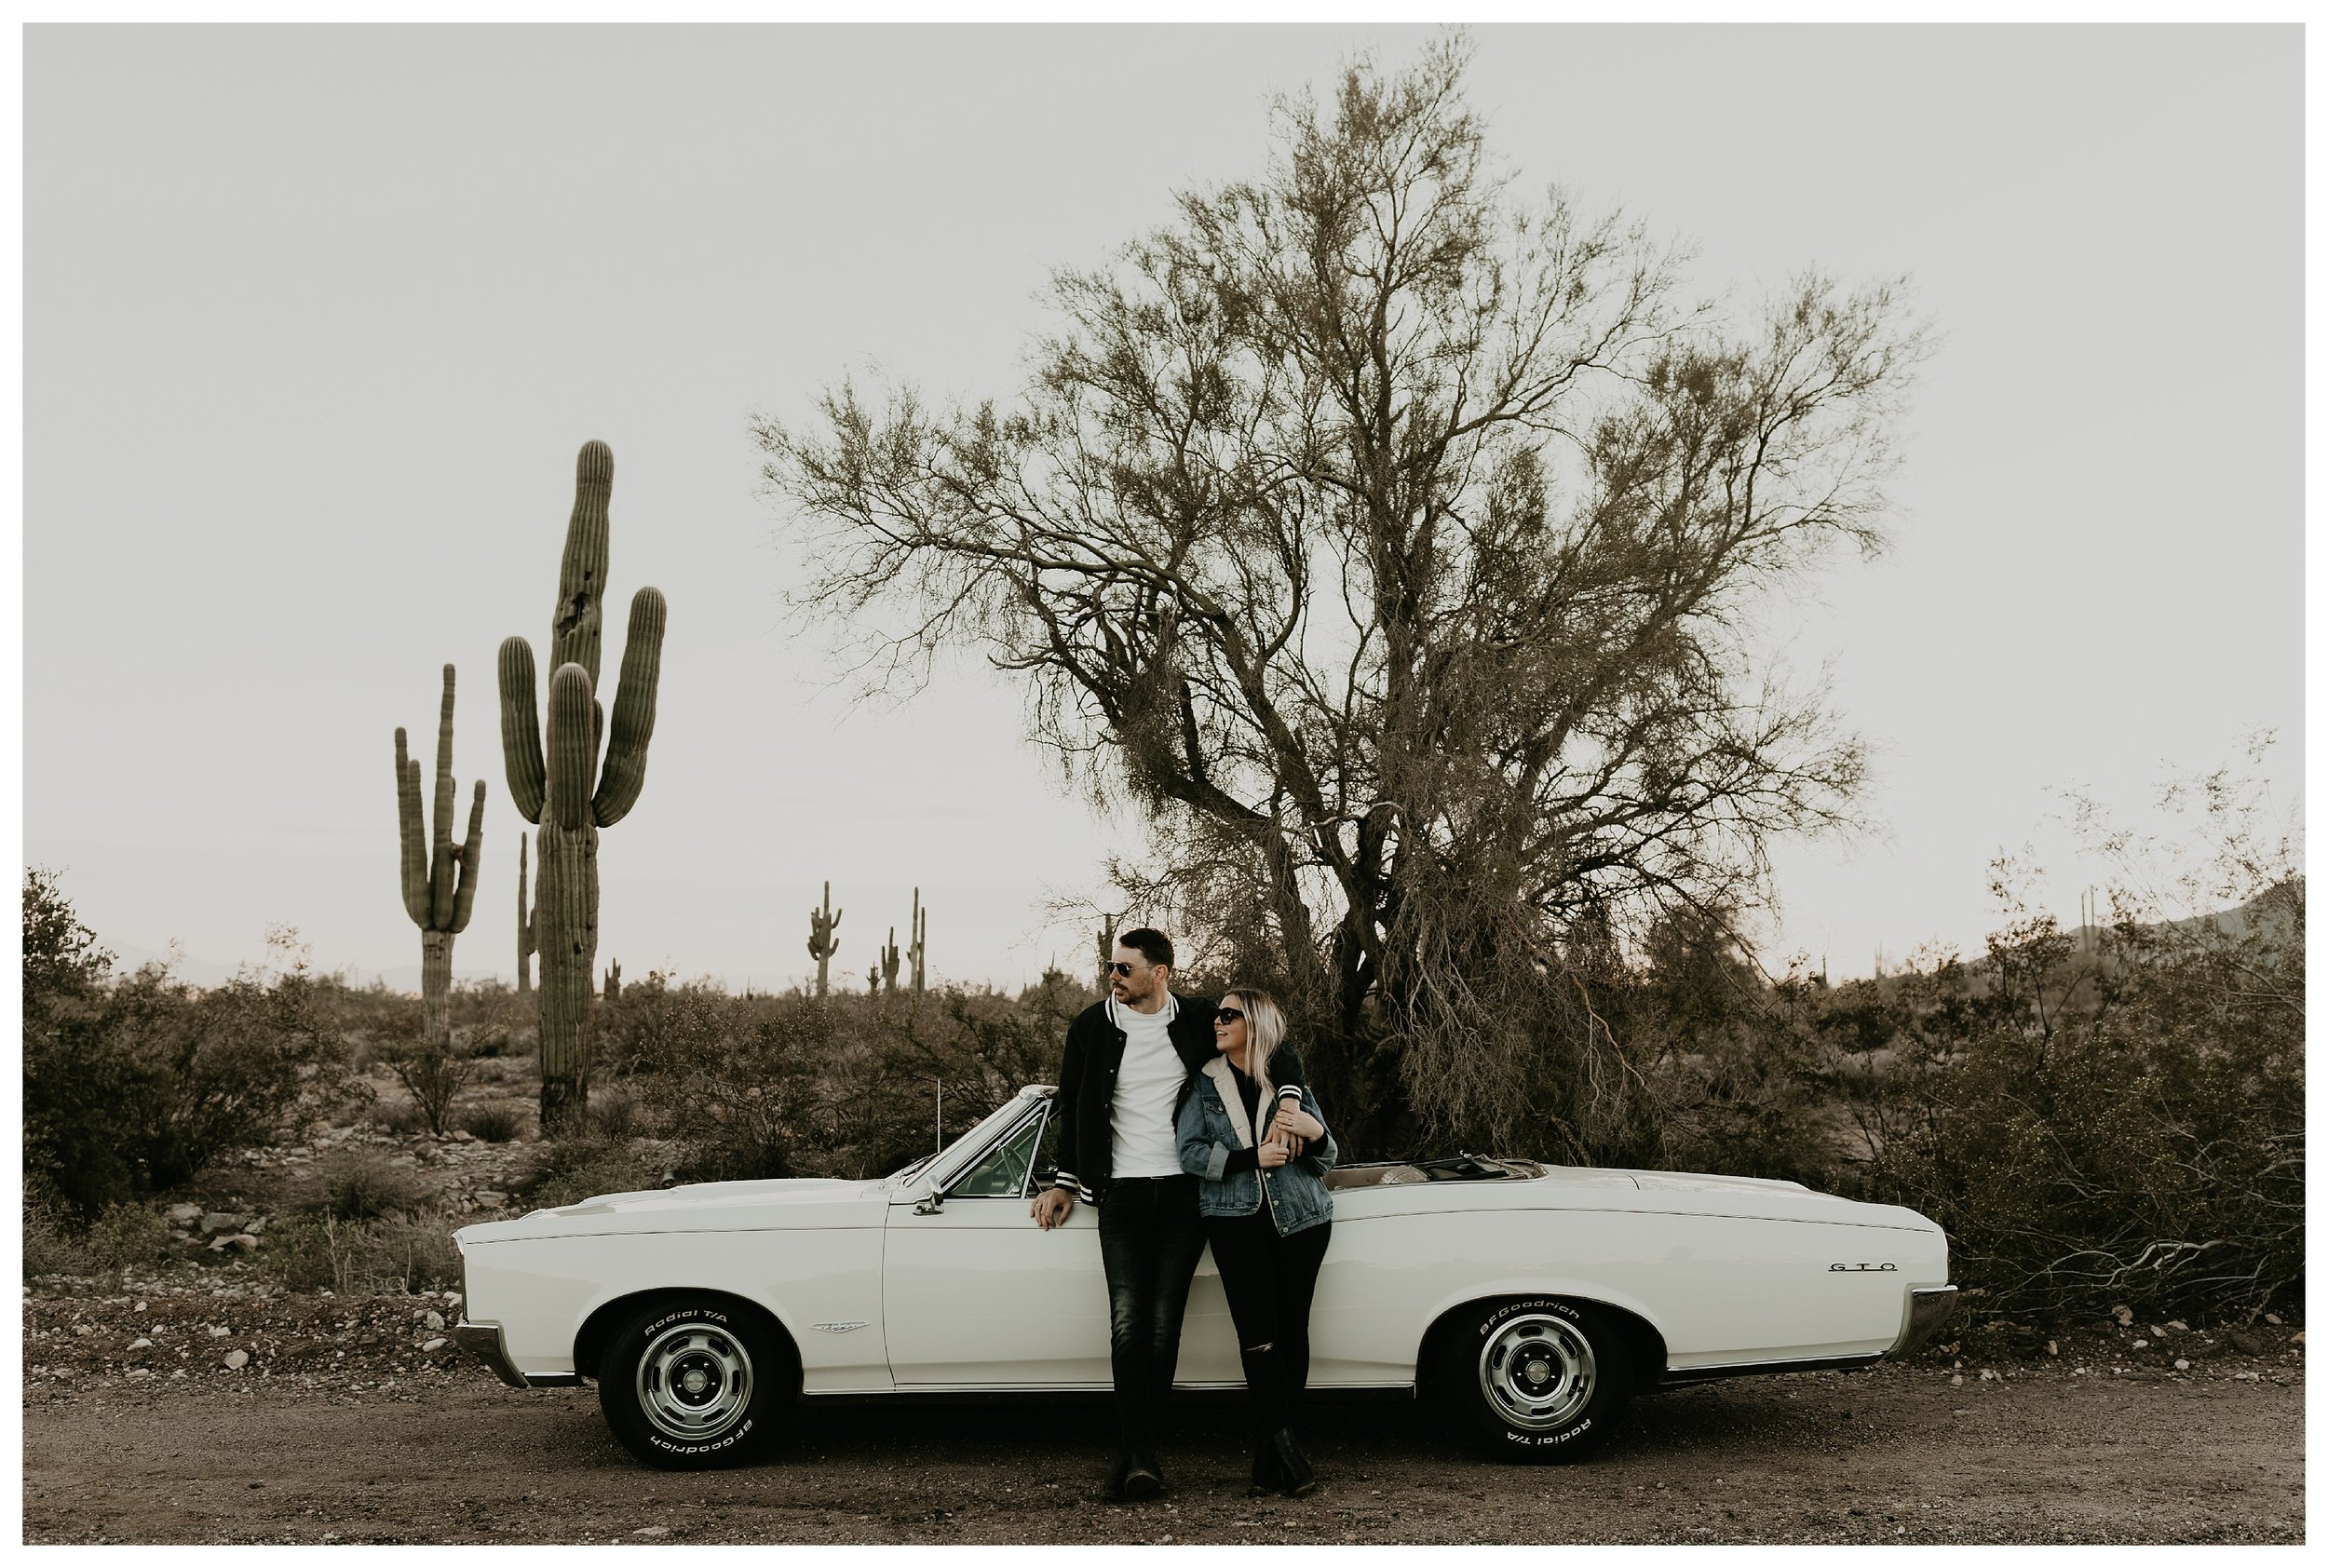 Desert engagement shoot with a vintage car